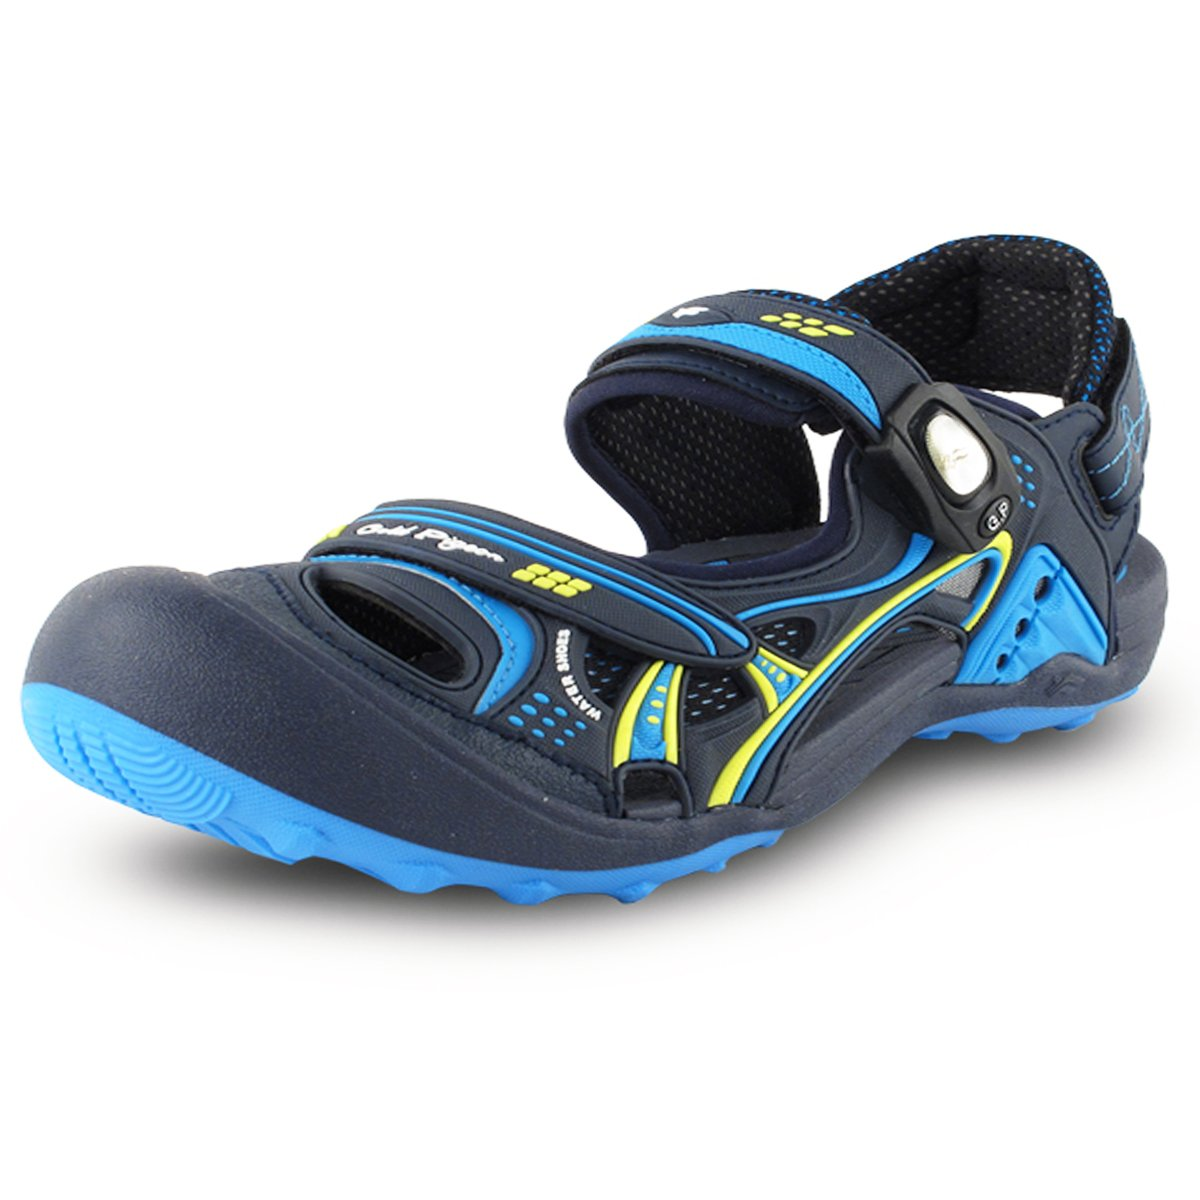 Gold Pigeon Shoes GP5937 Easy Snap Lock Closure Sports/Water Sandals for Men & Women B074VF2HP3 EU40: Women 9.5/10 & Men 8.5/9|7643 Black Blue